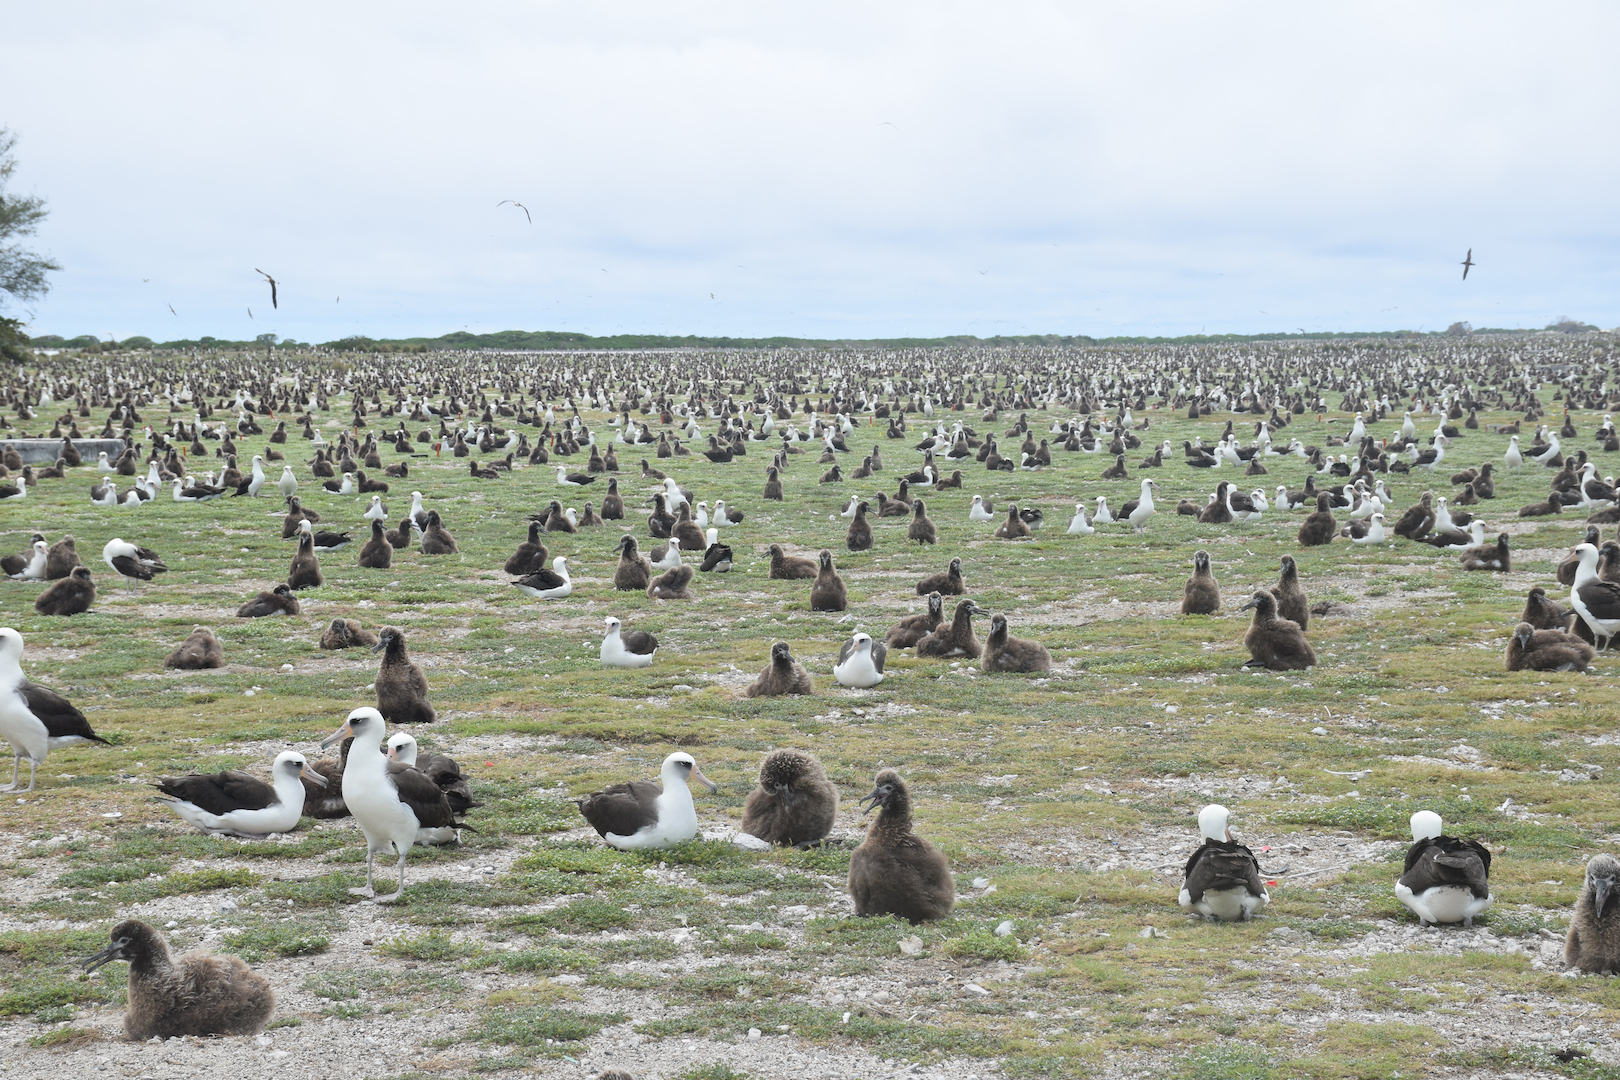 Midway, Atoll, Albatross, Chicks, Nests, Ground, lots, plenty, many, abundant, birds, numerous, as far as the eye can see